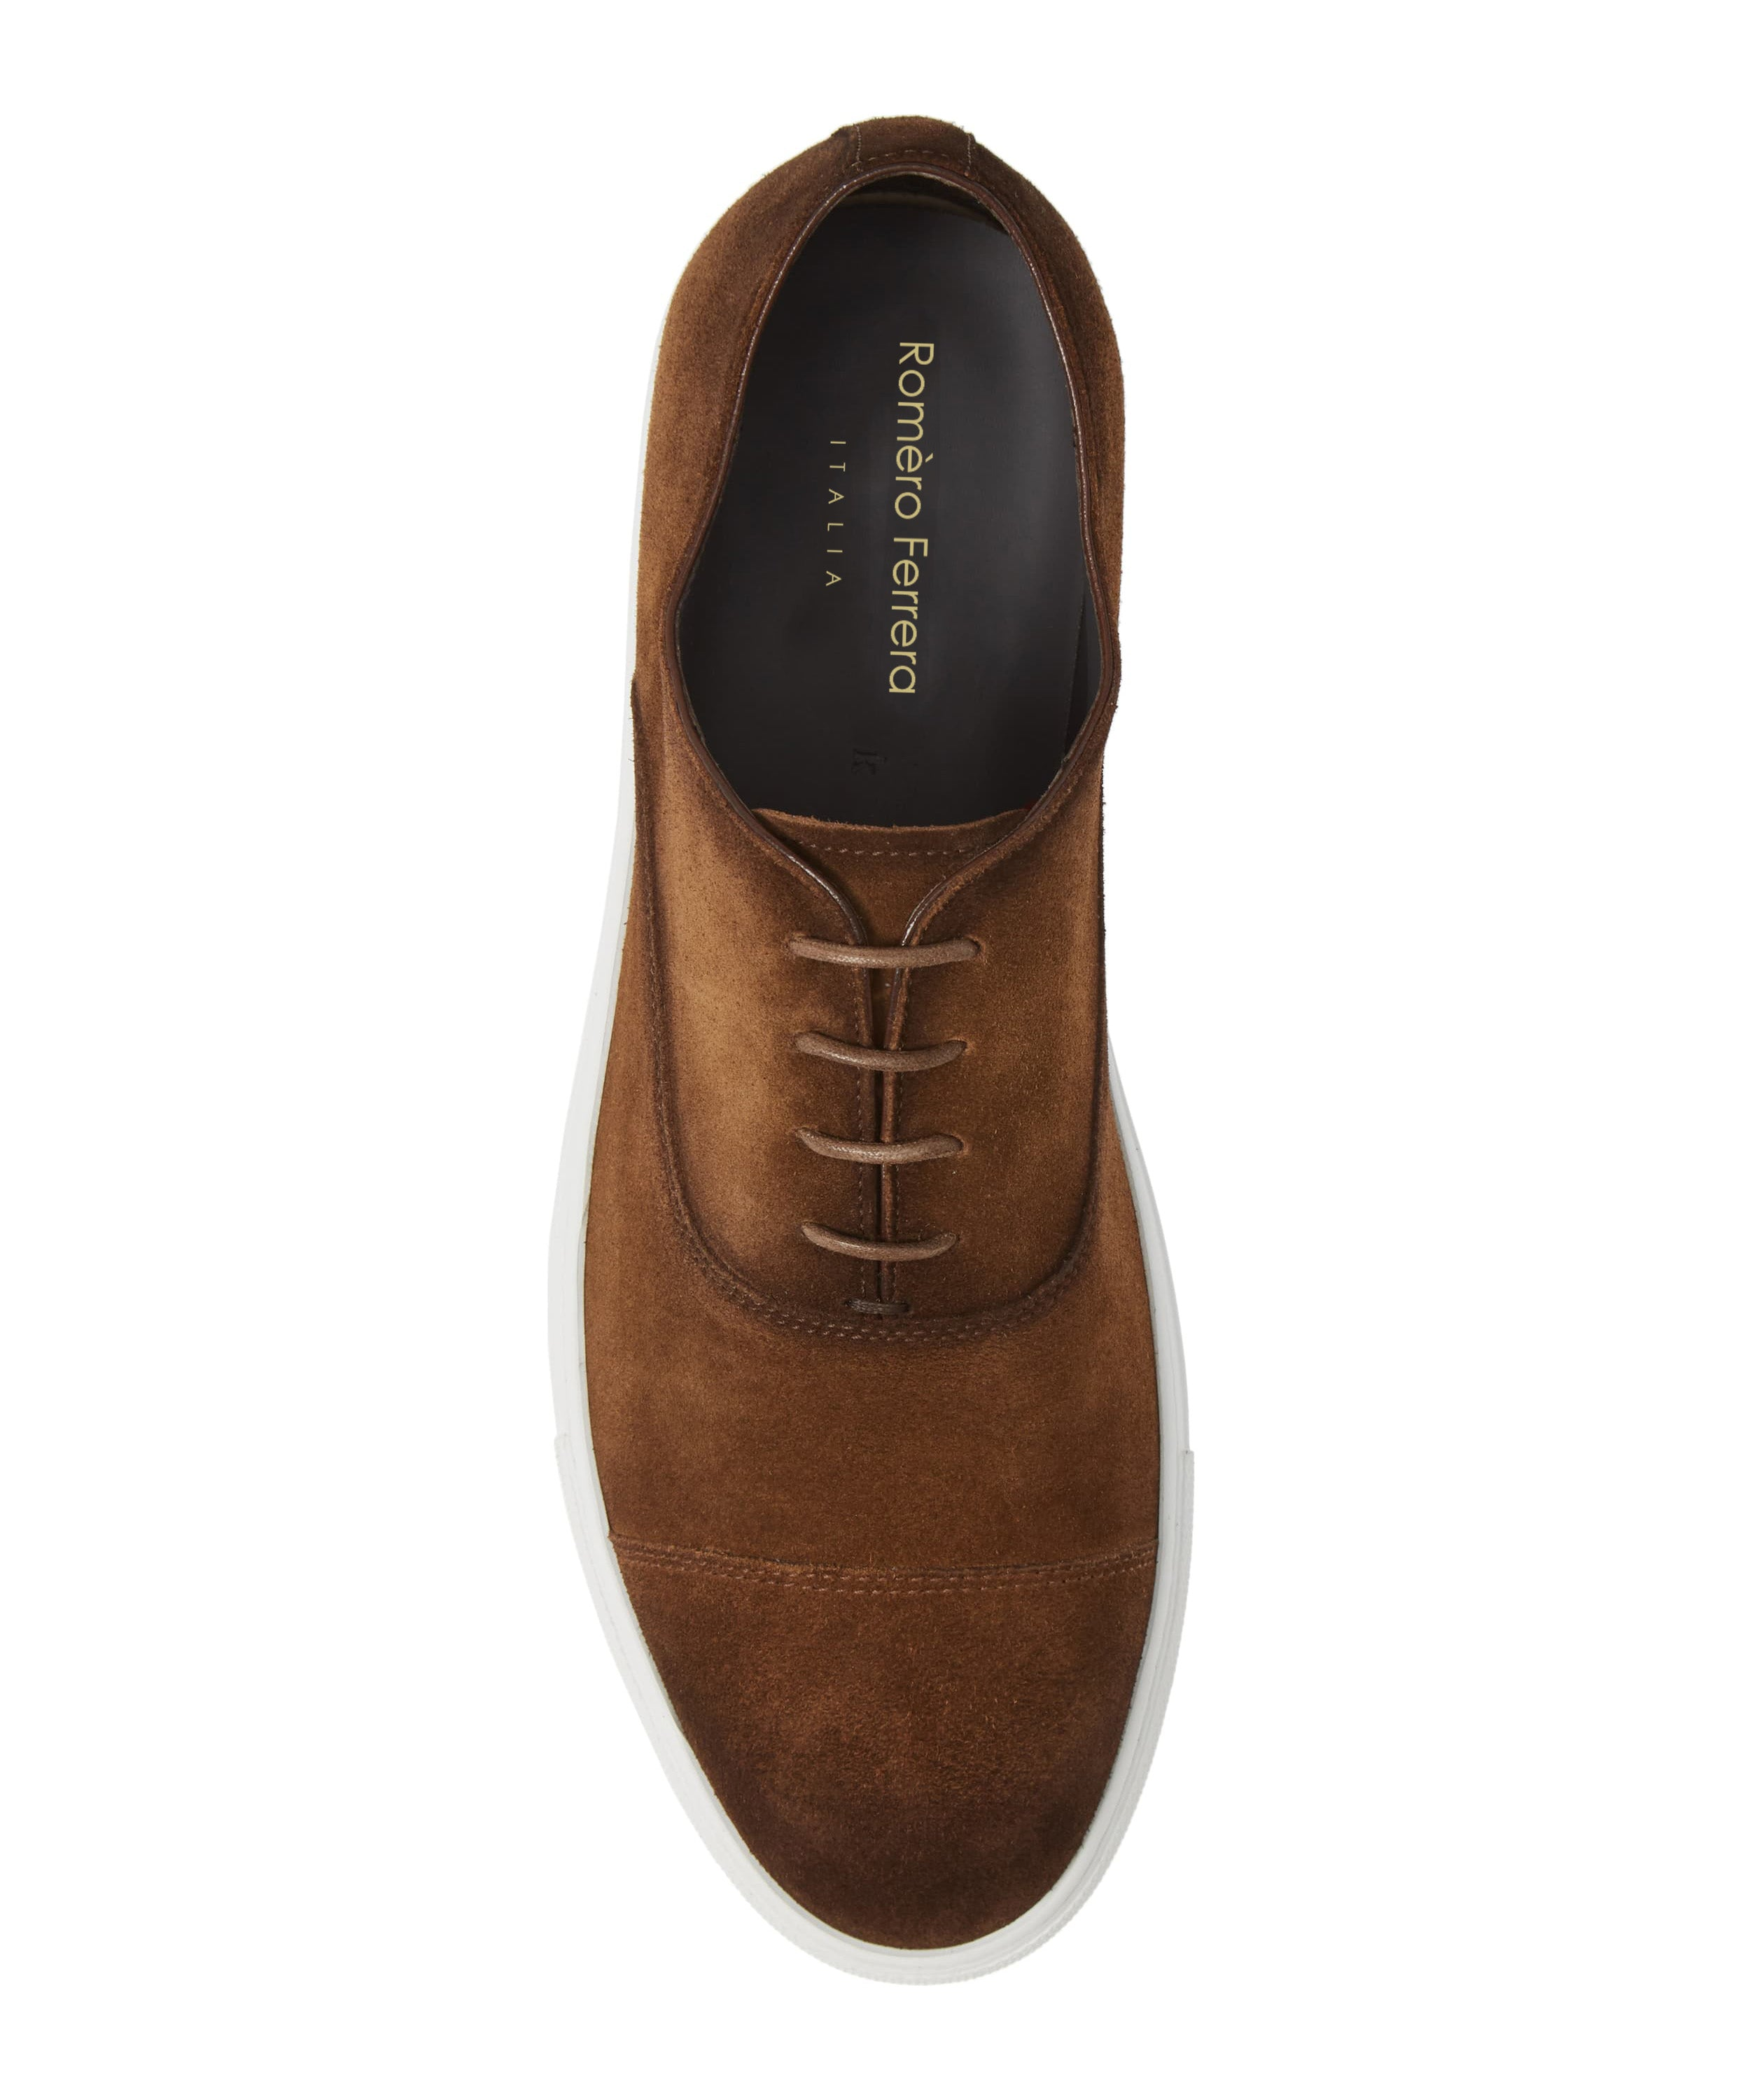 Dark Brown Burnished Suede Leather Low Top Lace Up Sneaker for Men. White Comfortable Cup Sole.